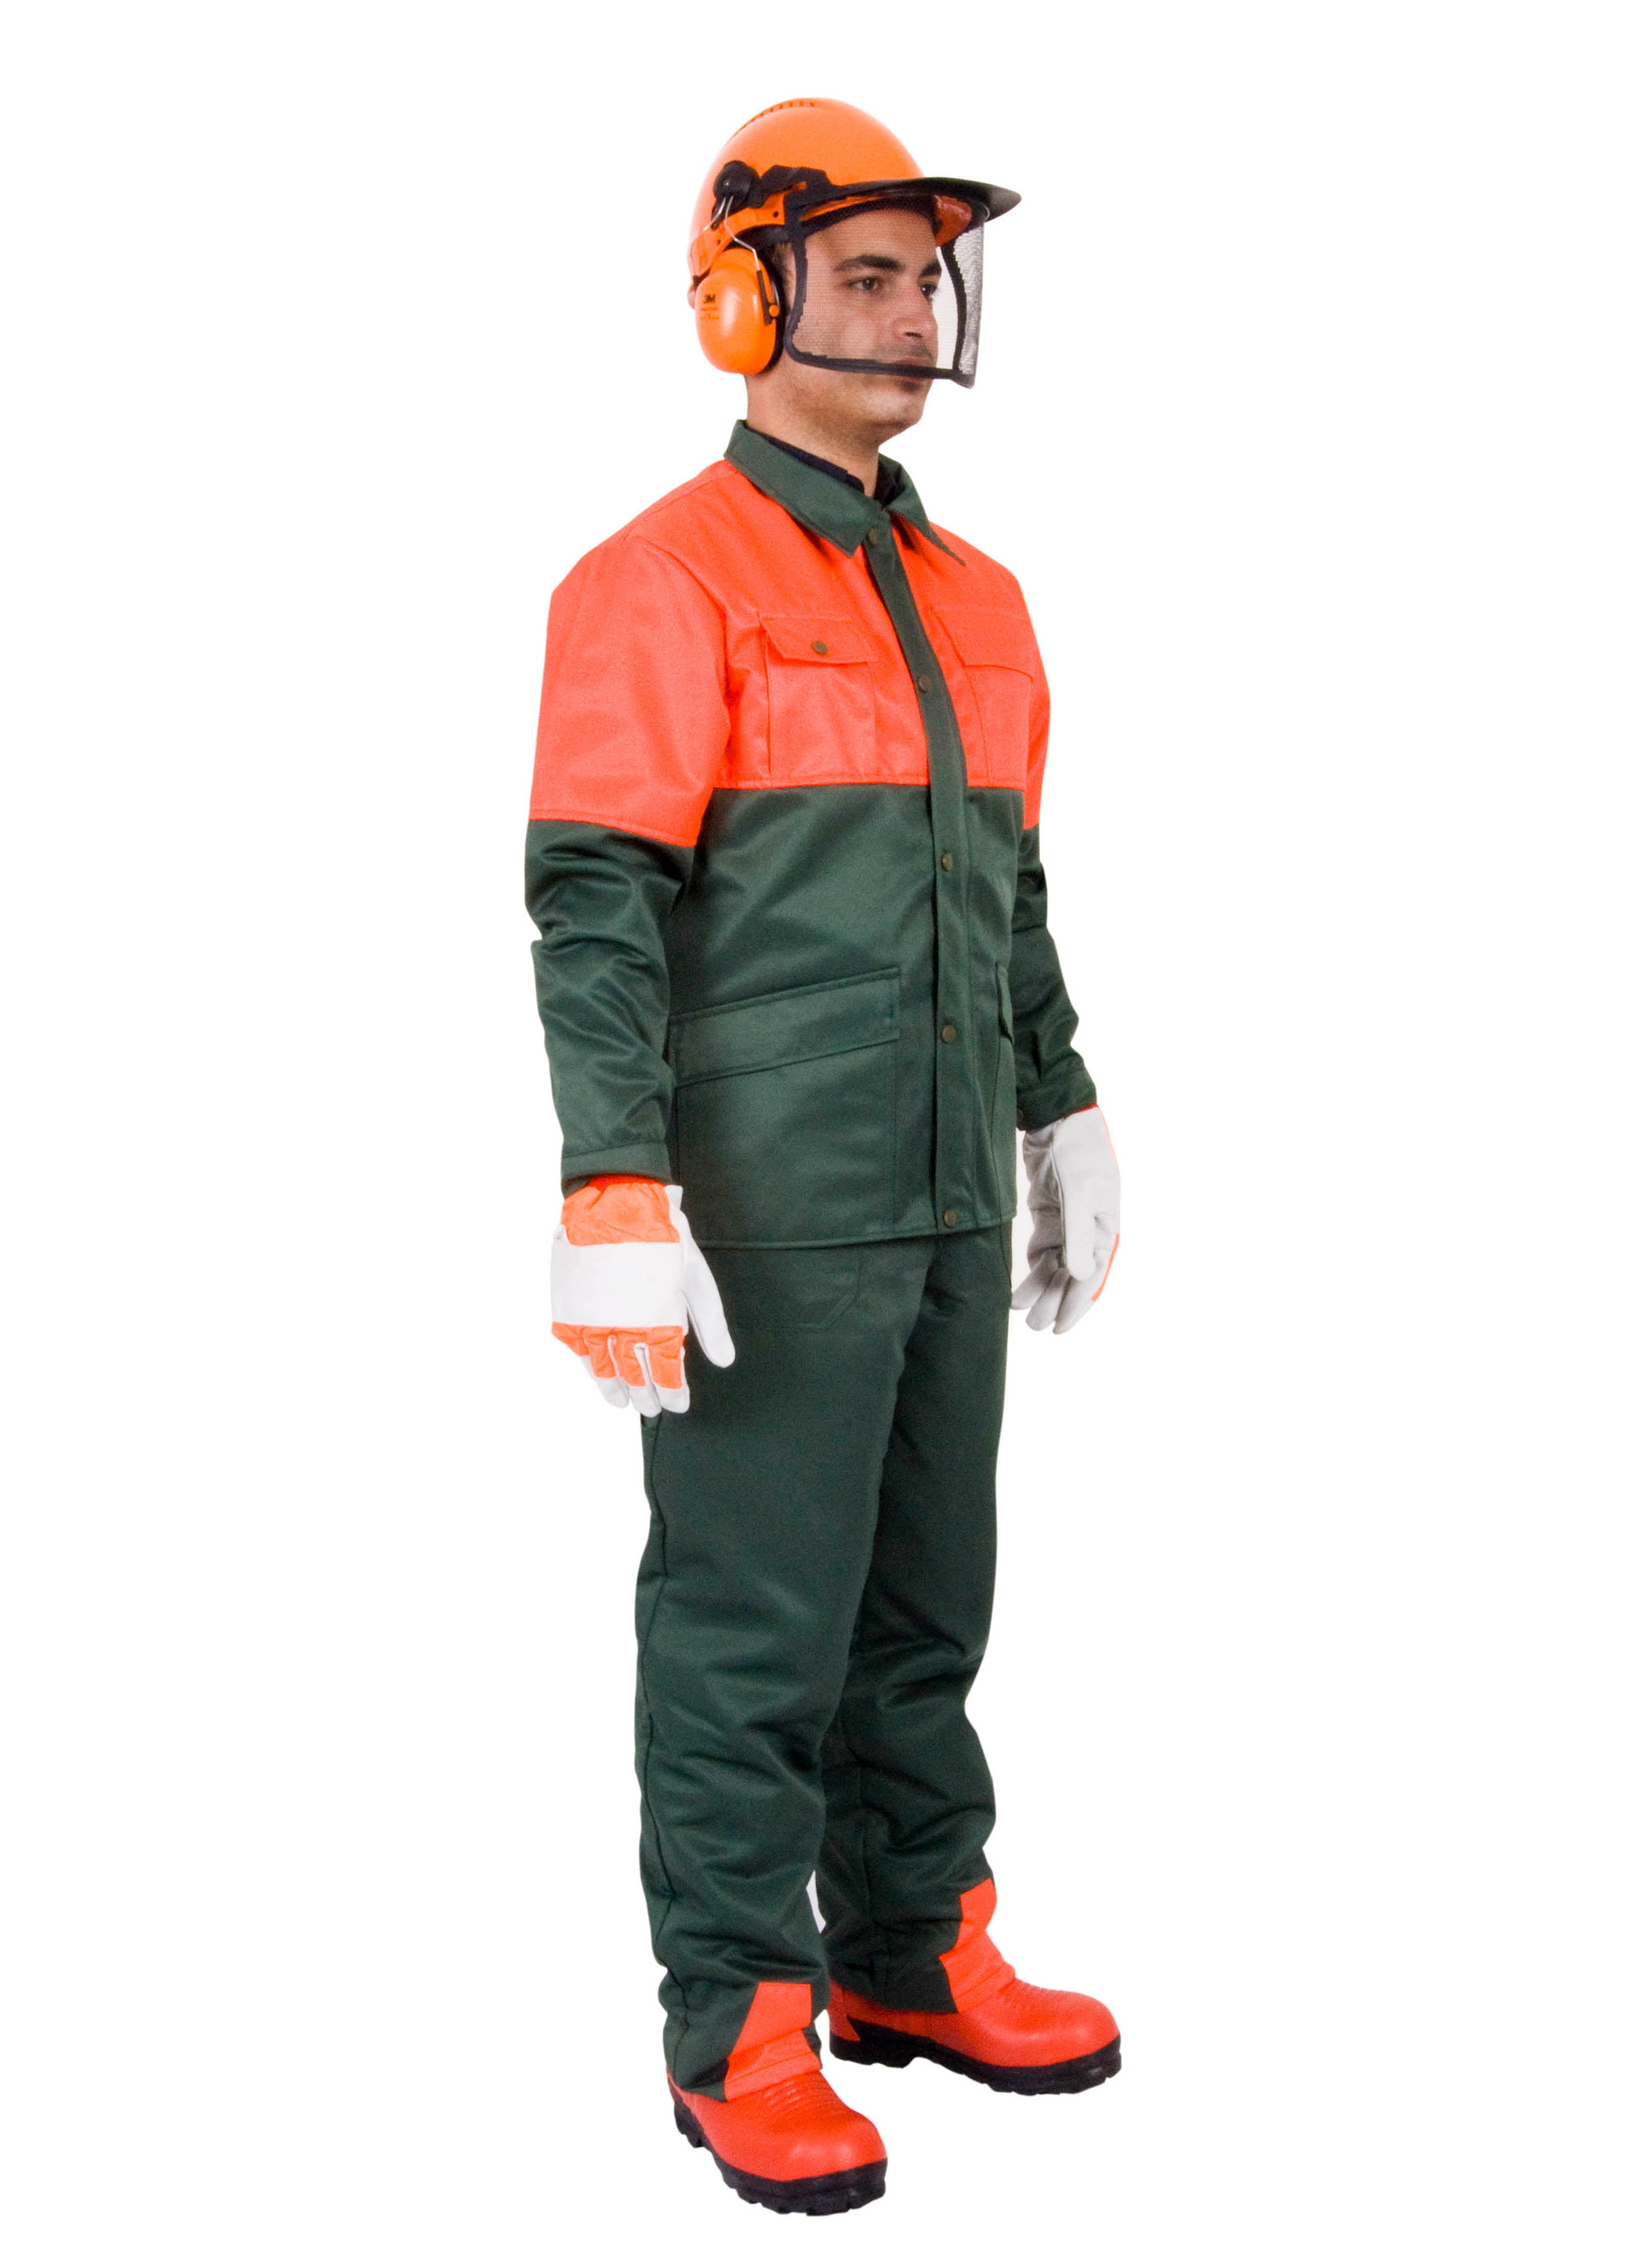 831100 PROTEK® Cut Proof Clothing